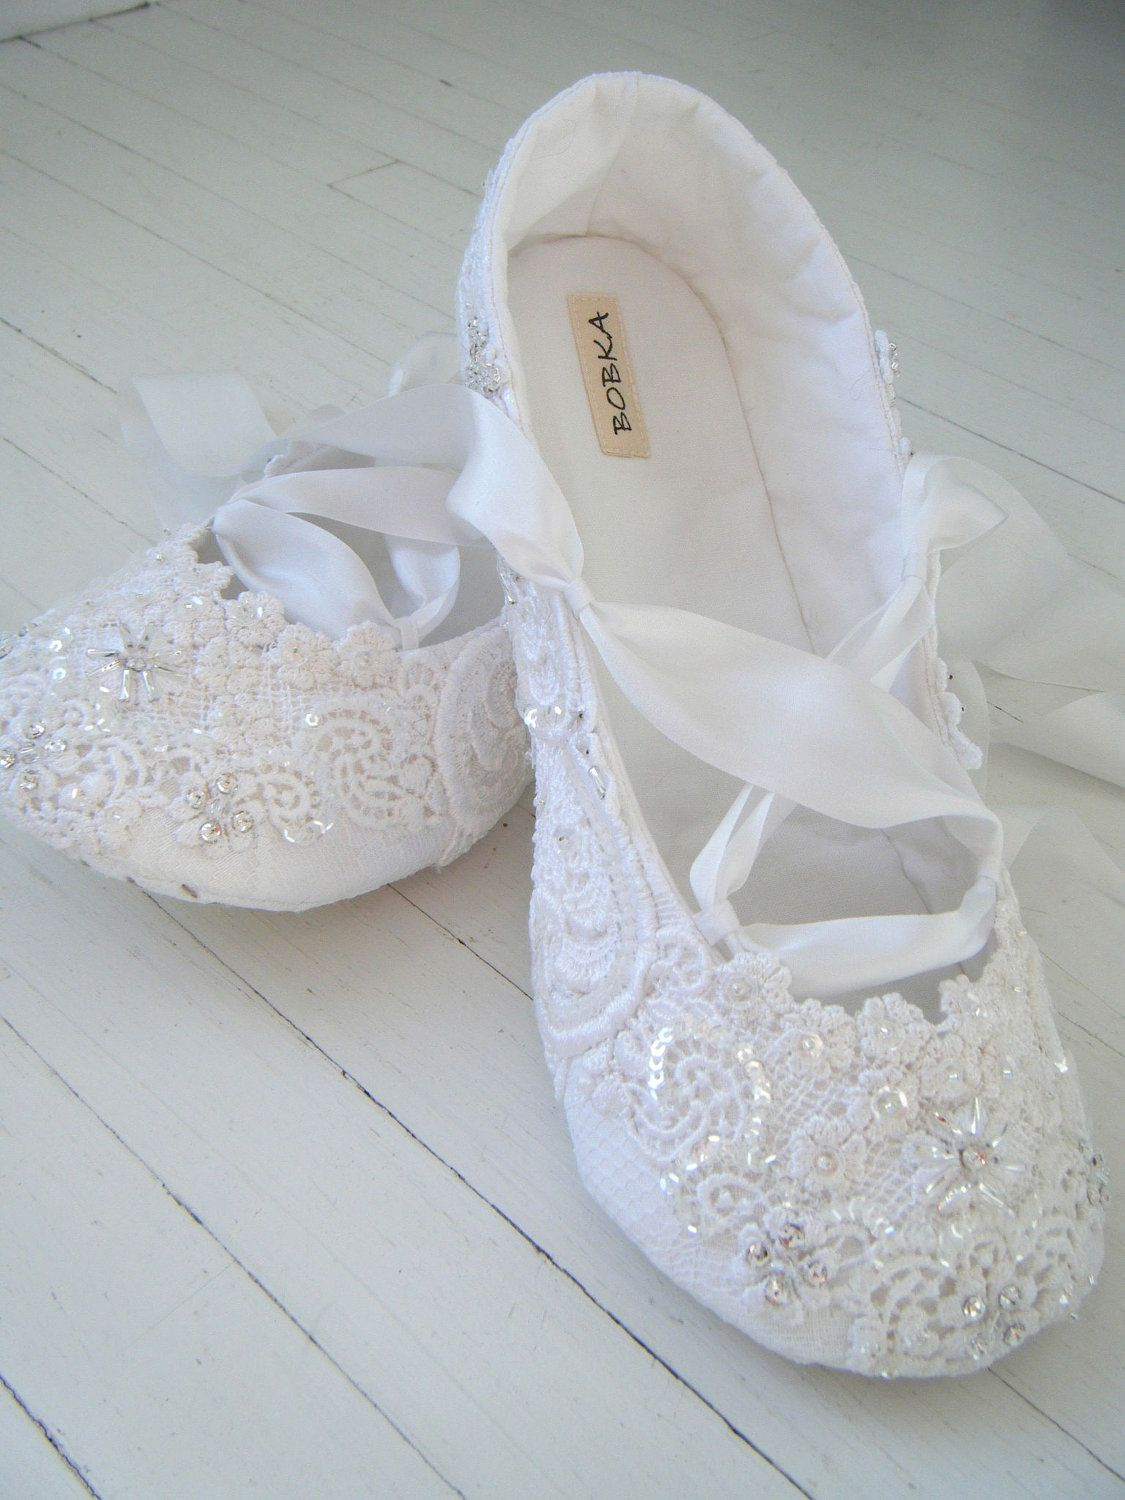 Bridal Shoes Flats Wedding Ballet Shoes White Crystal Ballet